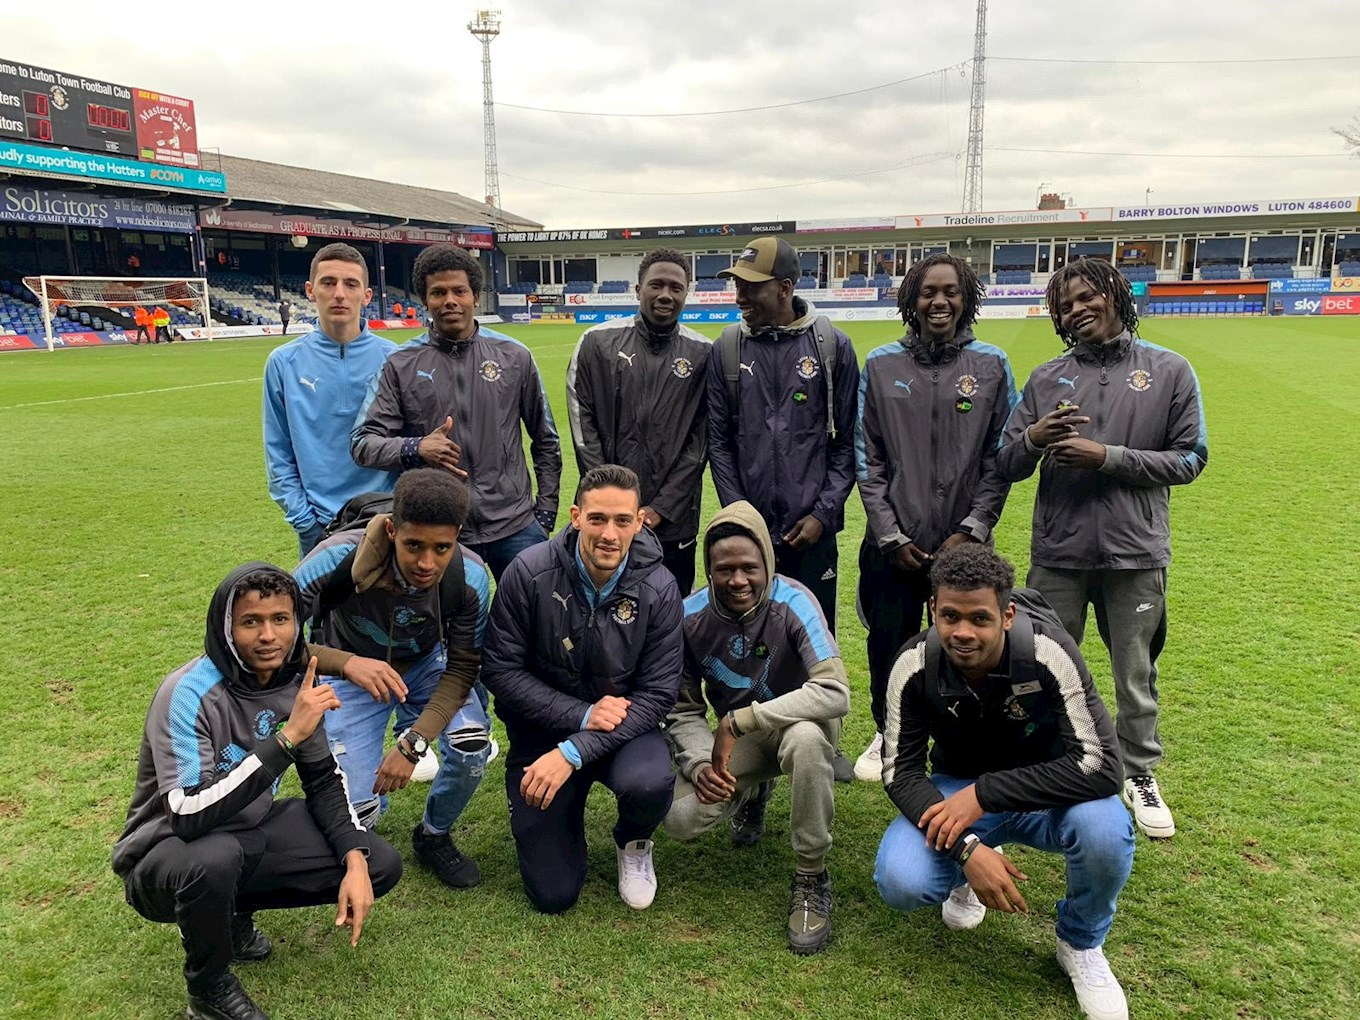 The group of young male asylum seekers from Sudan on the Kenilworth Road pitch ahead of the Blackpool game